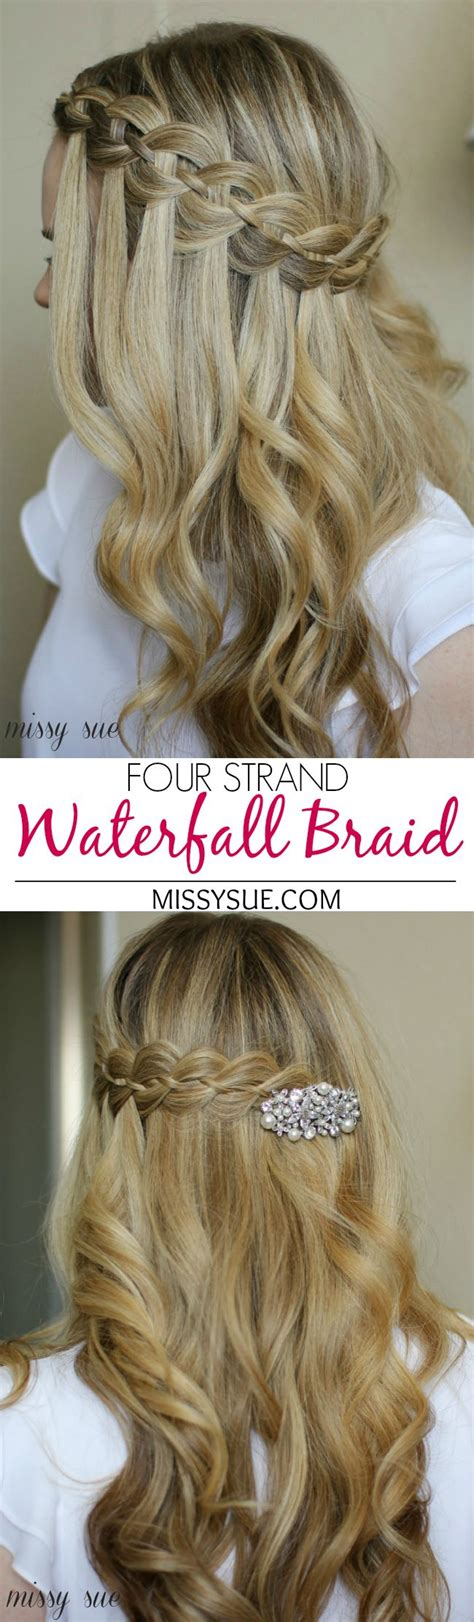 50 most beautiful hairstyles all will styles weekly